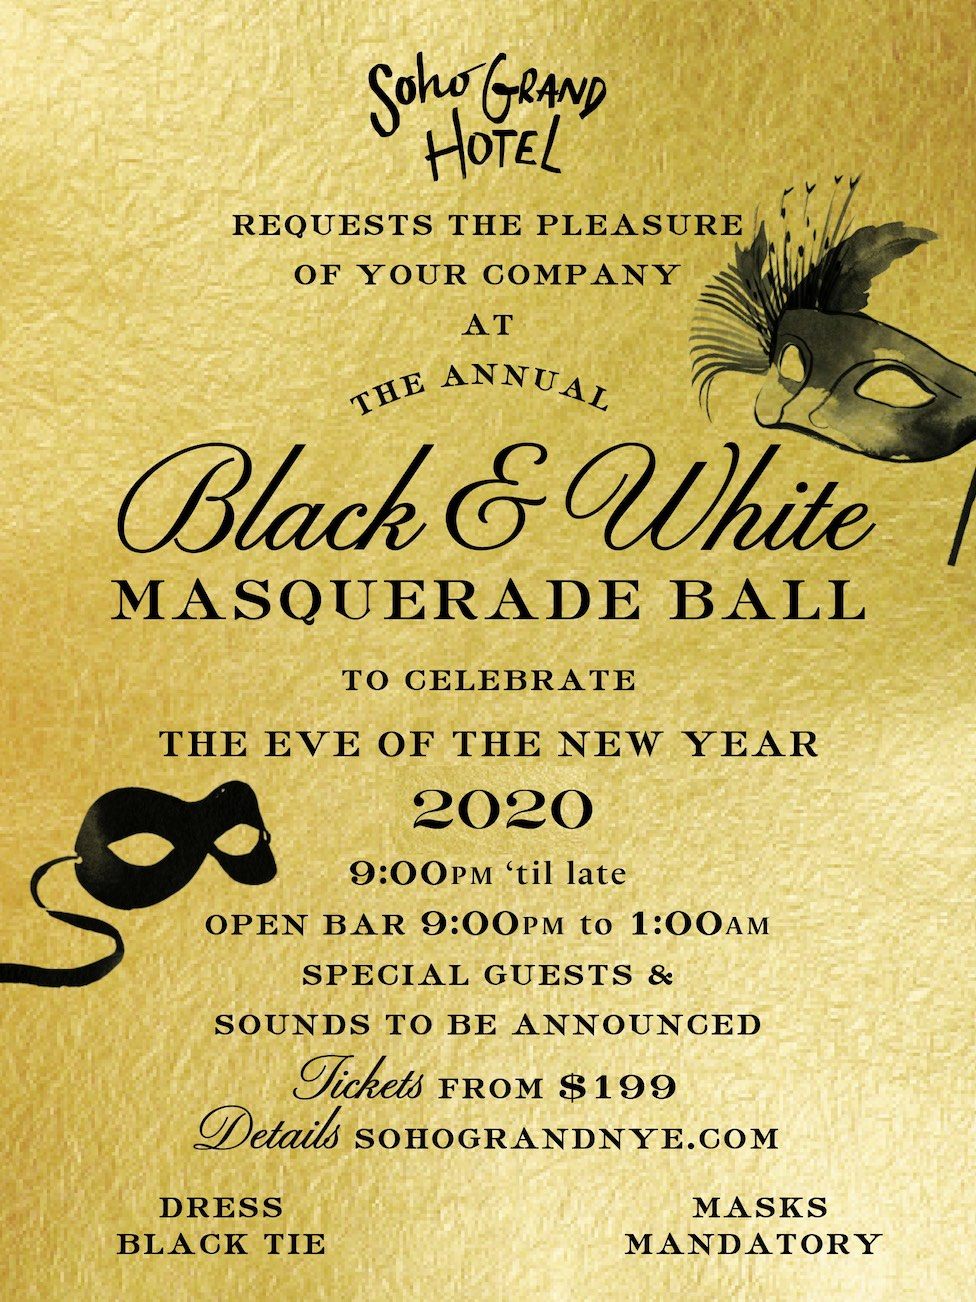 Soho Grand Presents the 12th Annual Black & White Masquerade Ball